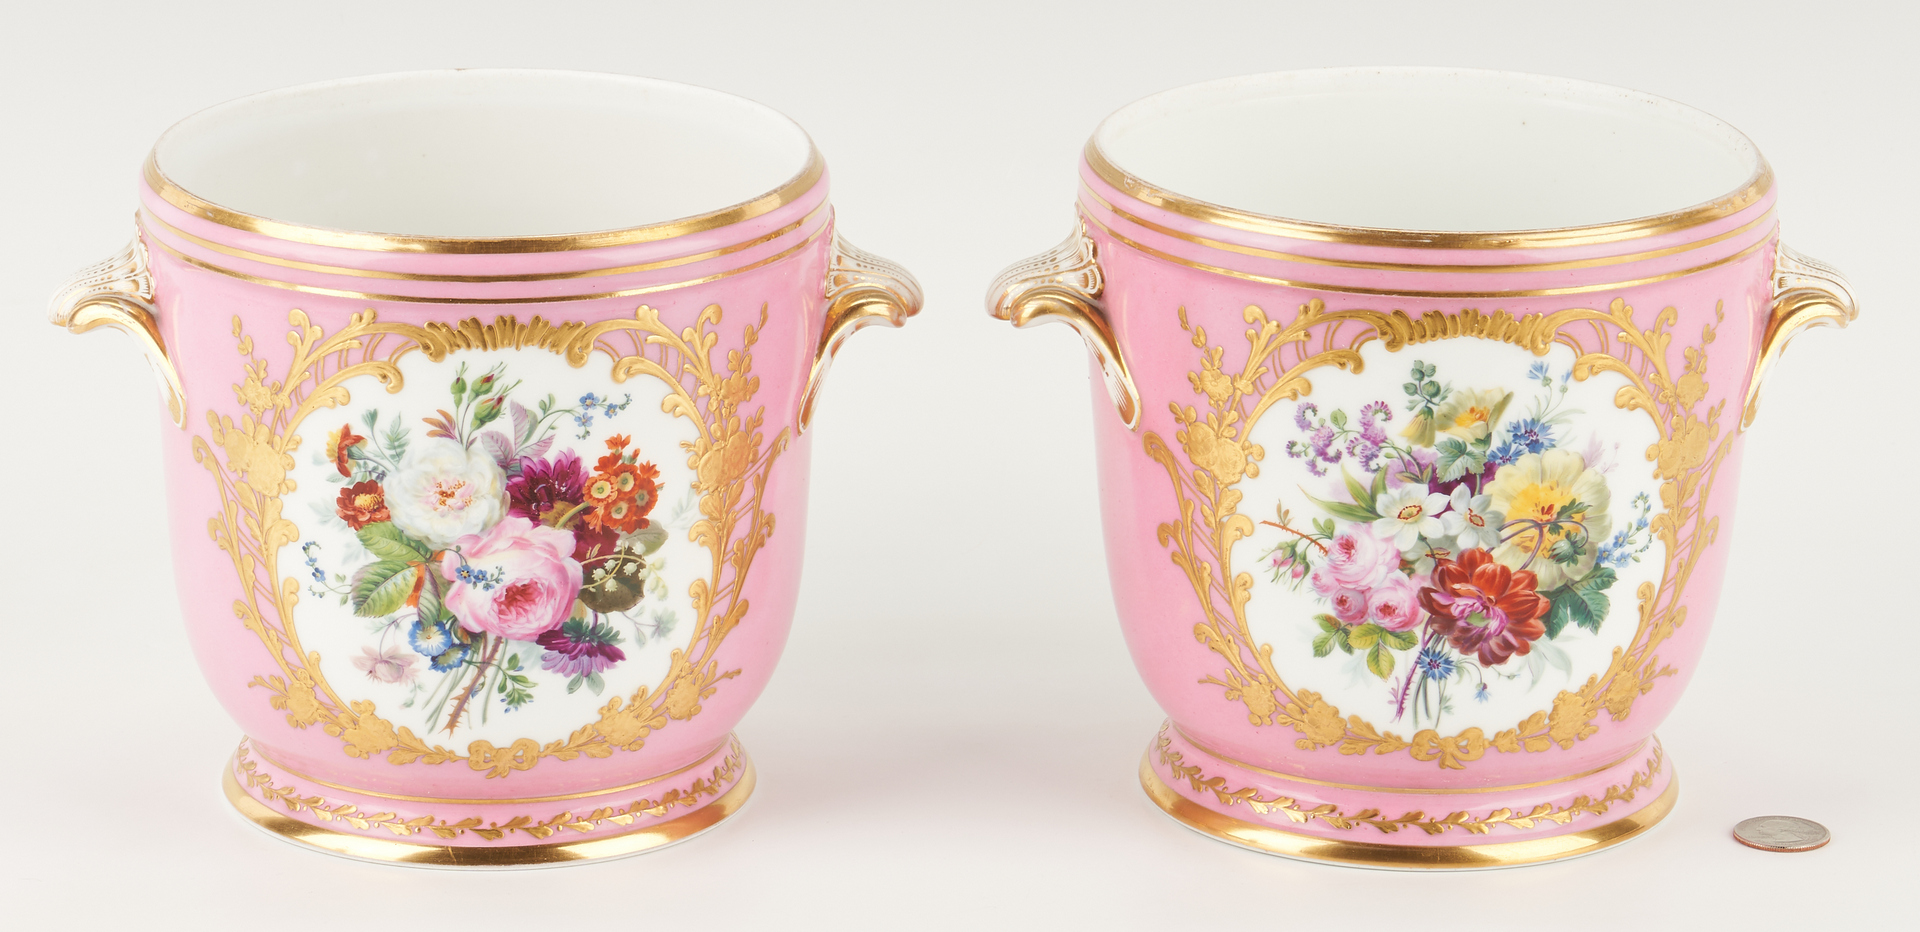 Lot 949: Pair of French Porcelain Cachepots or Wine Coolers